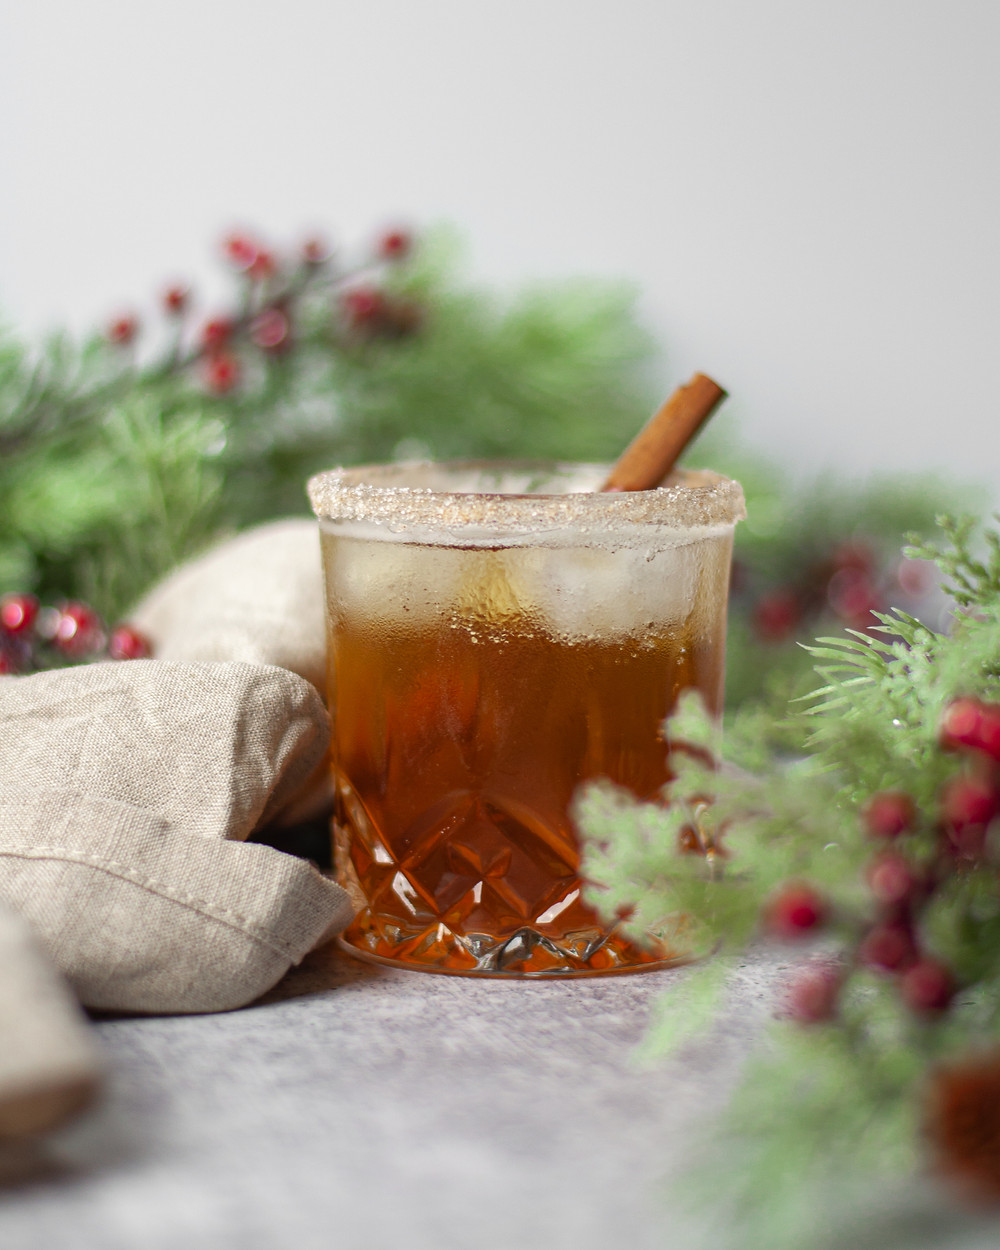 Christmasy scene showing one of our favorite winter bourbon drinks in a rocks glass garnished with a cinnamon stick and a cinnamon-sugar rim